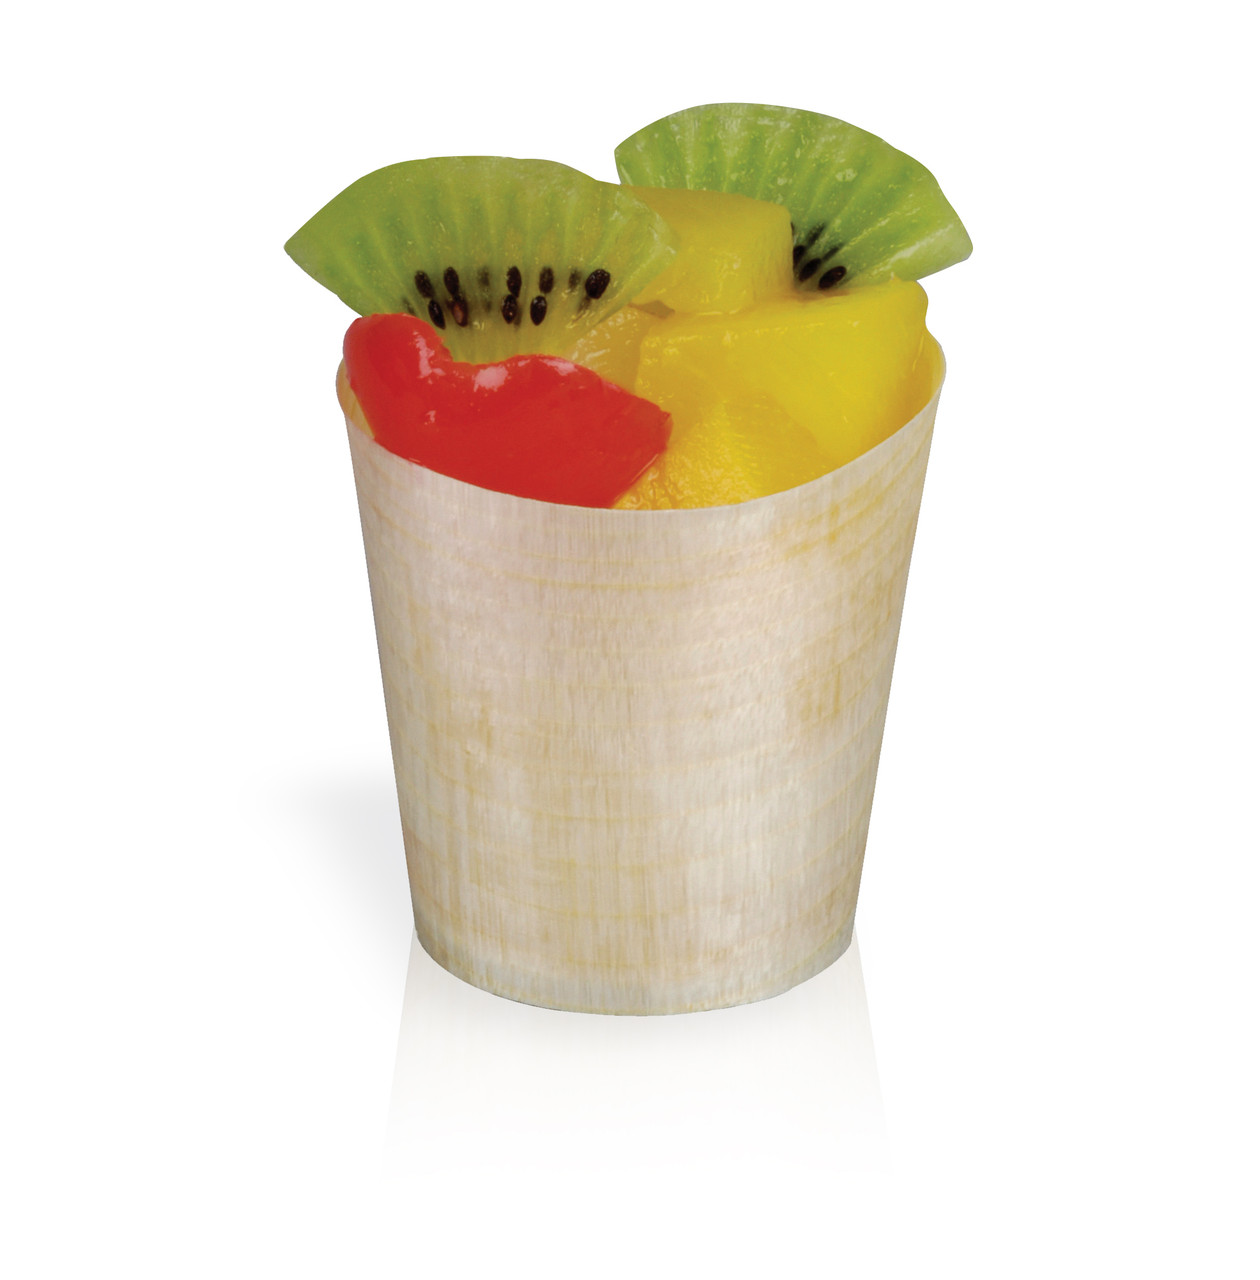 Mini Wooden Cup -3.75oz Dia:2.4in H:2.2in